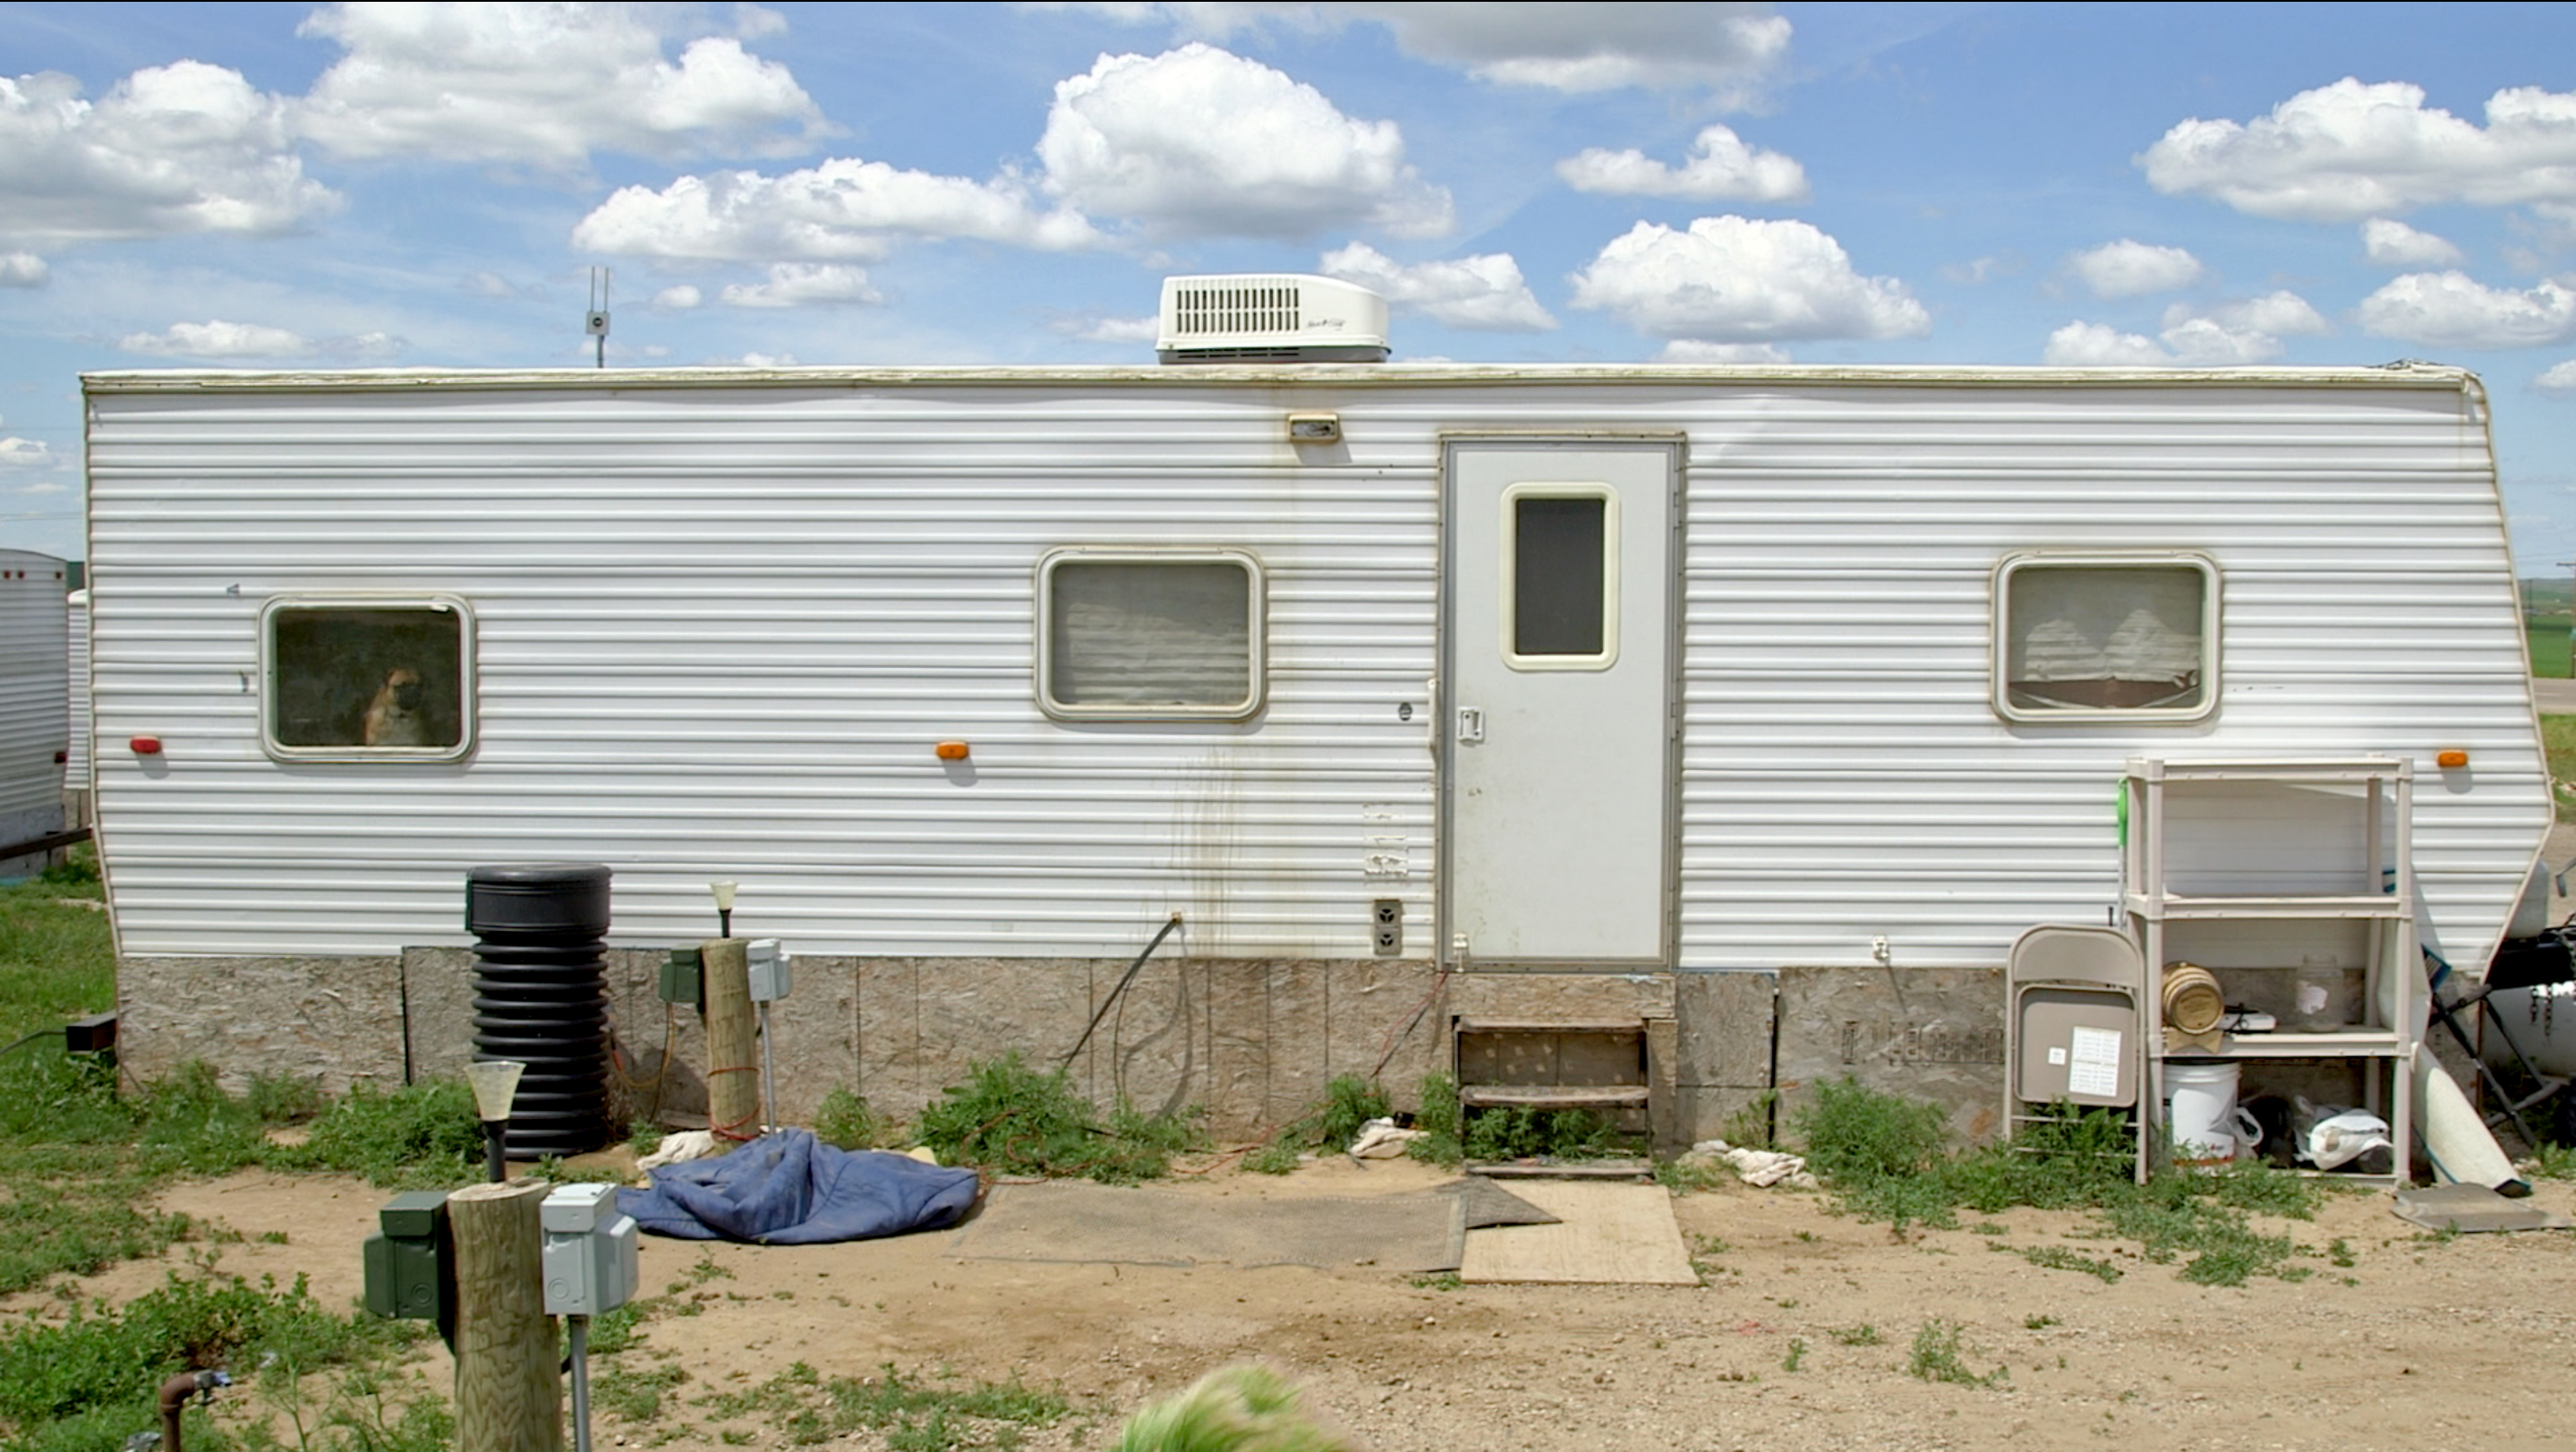 Delvin Cree: FEMA trailer problems still an issue in Indian Country